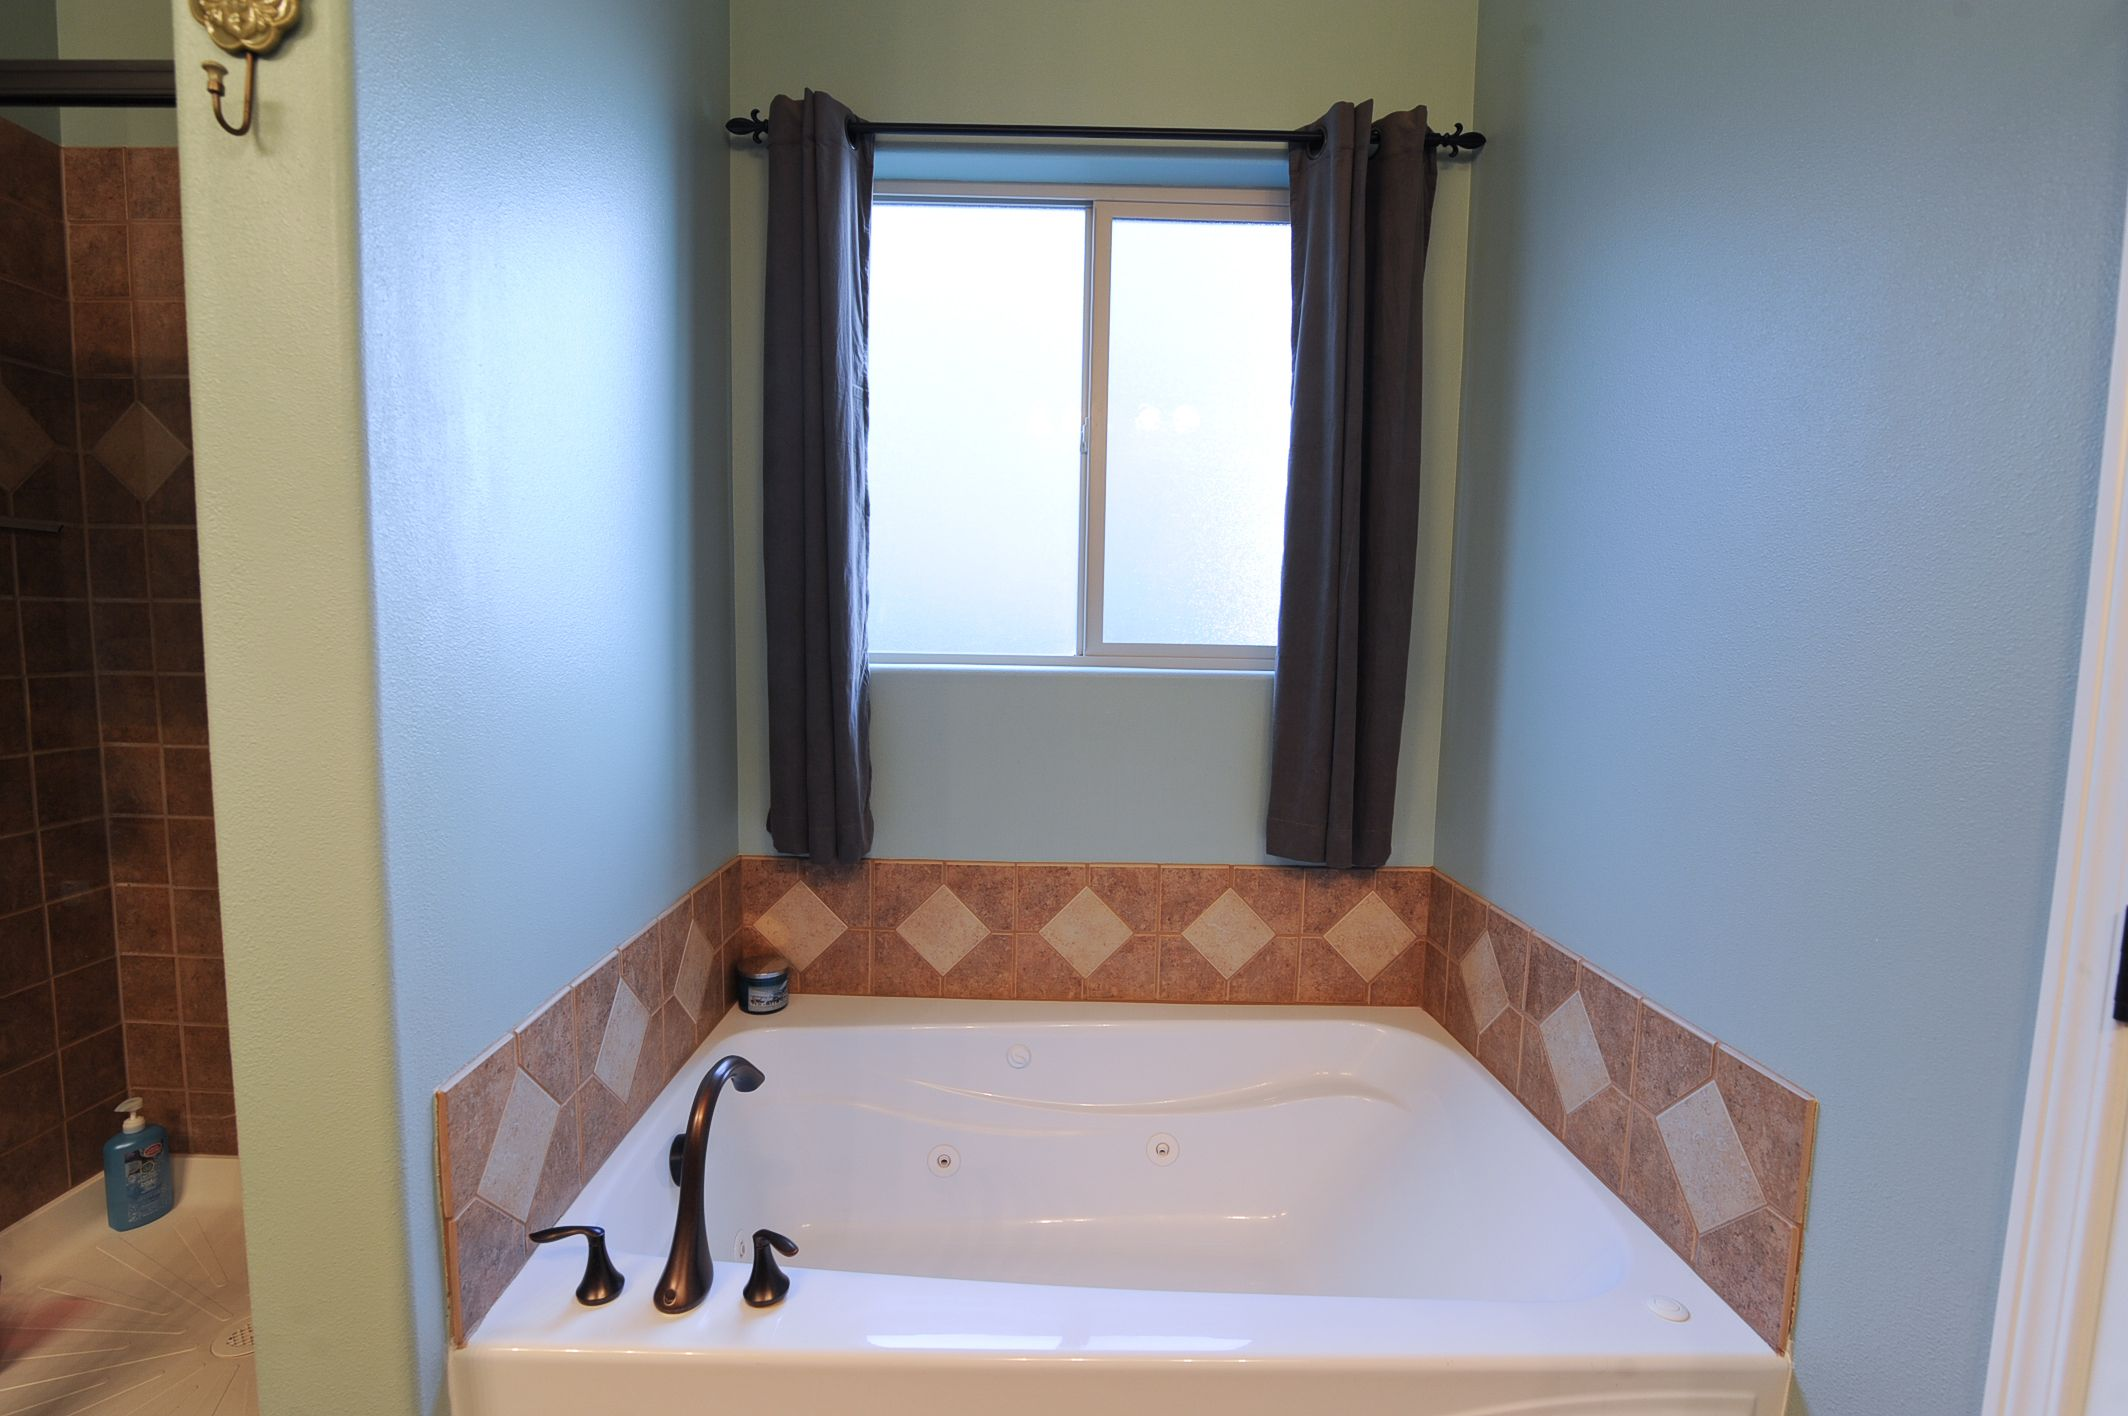 Large Bath Tub with Tile Backsplash - vikinhomes.com | Master ...